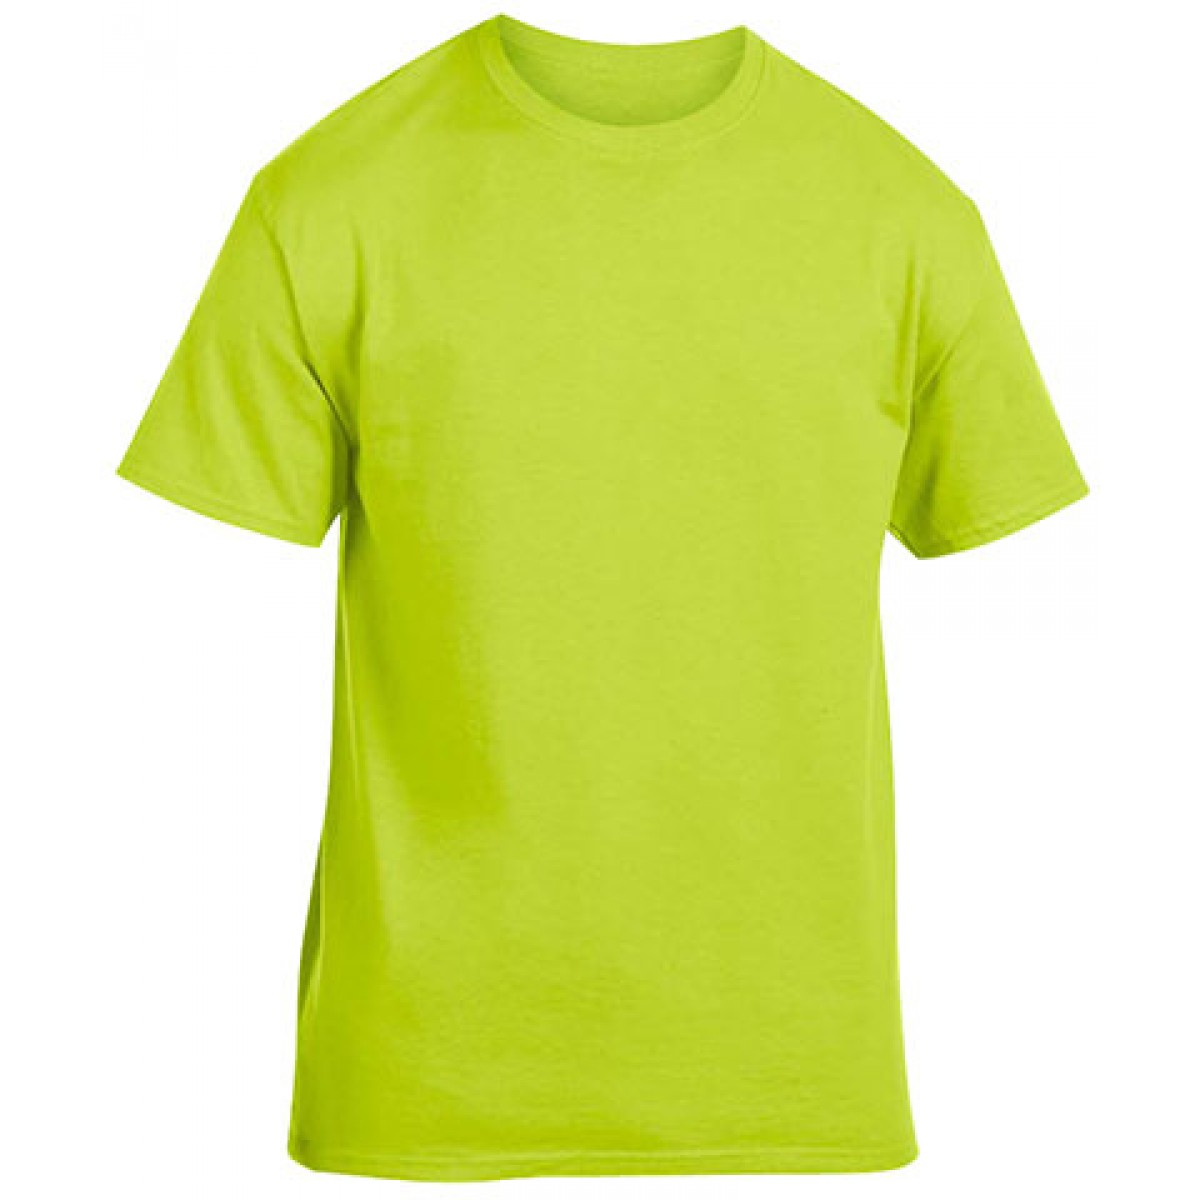 Cotton Short Sleeve T-Shirt-Safety Green-XS